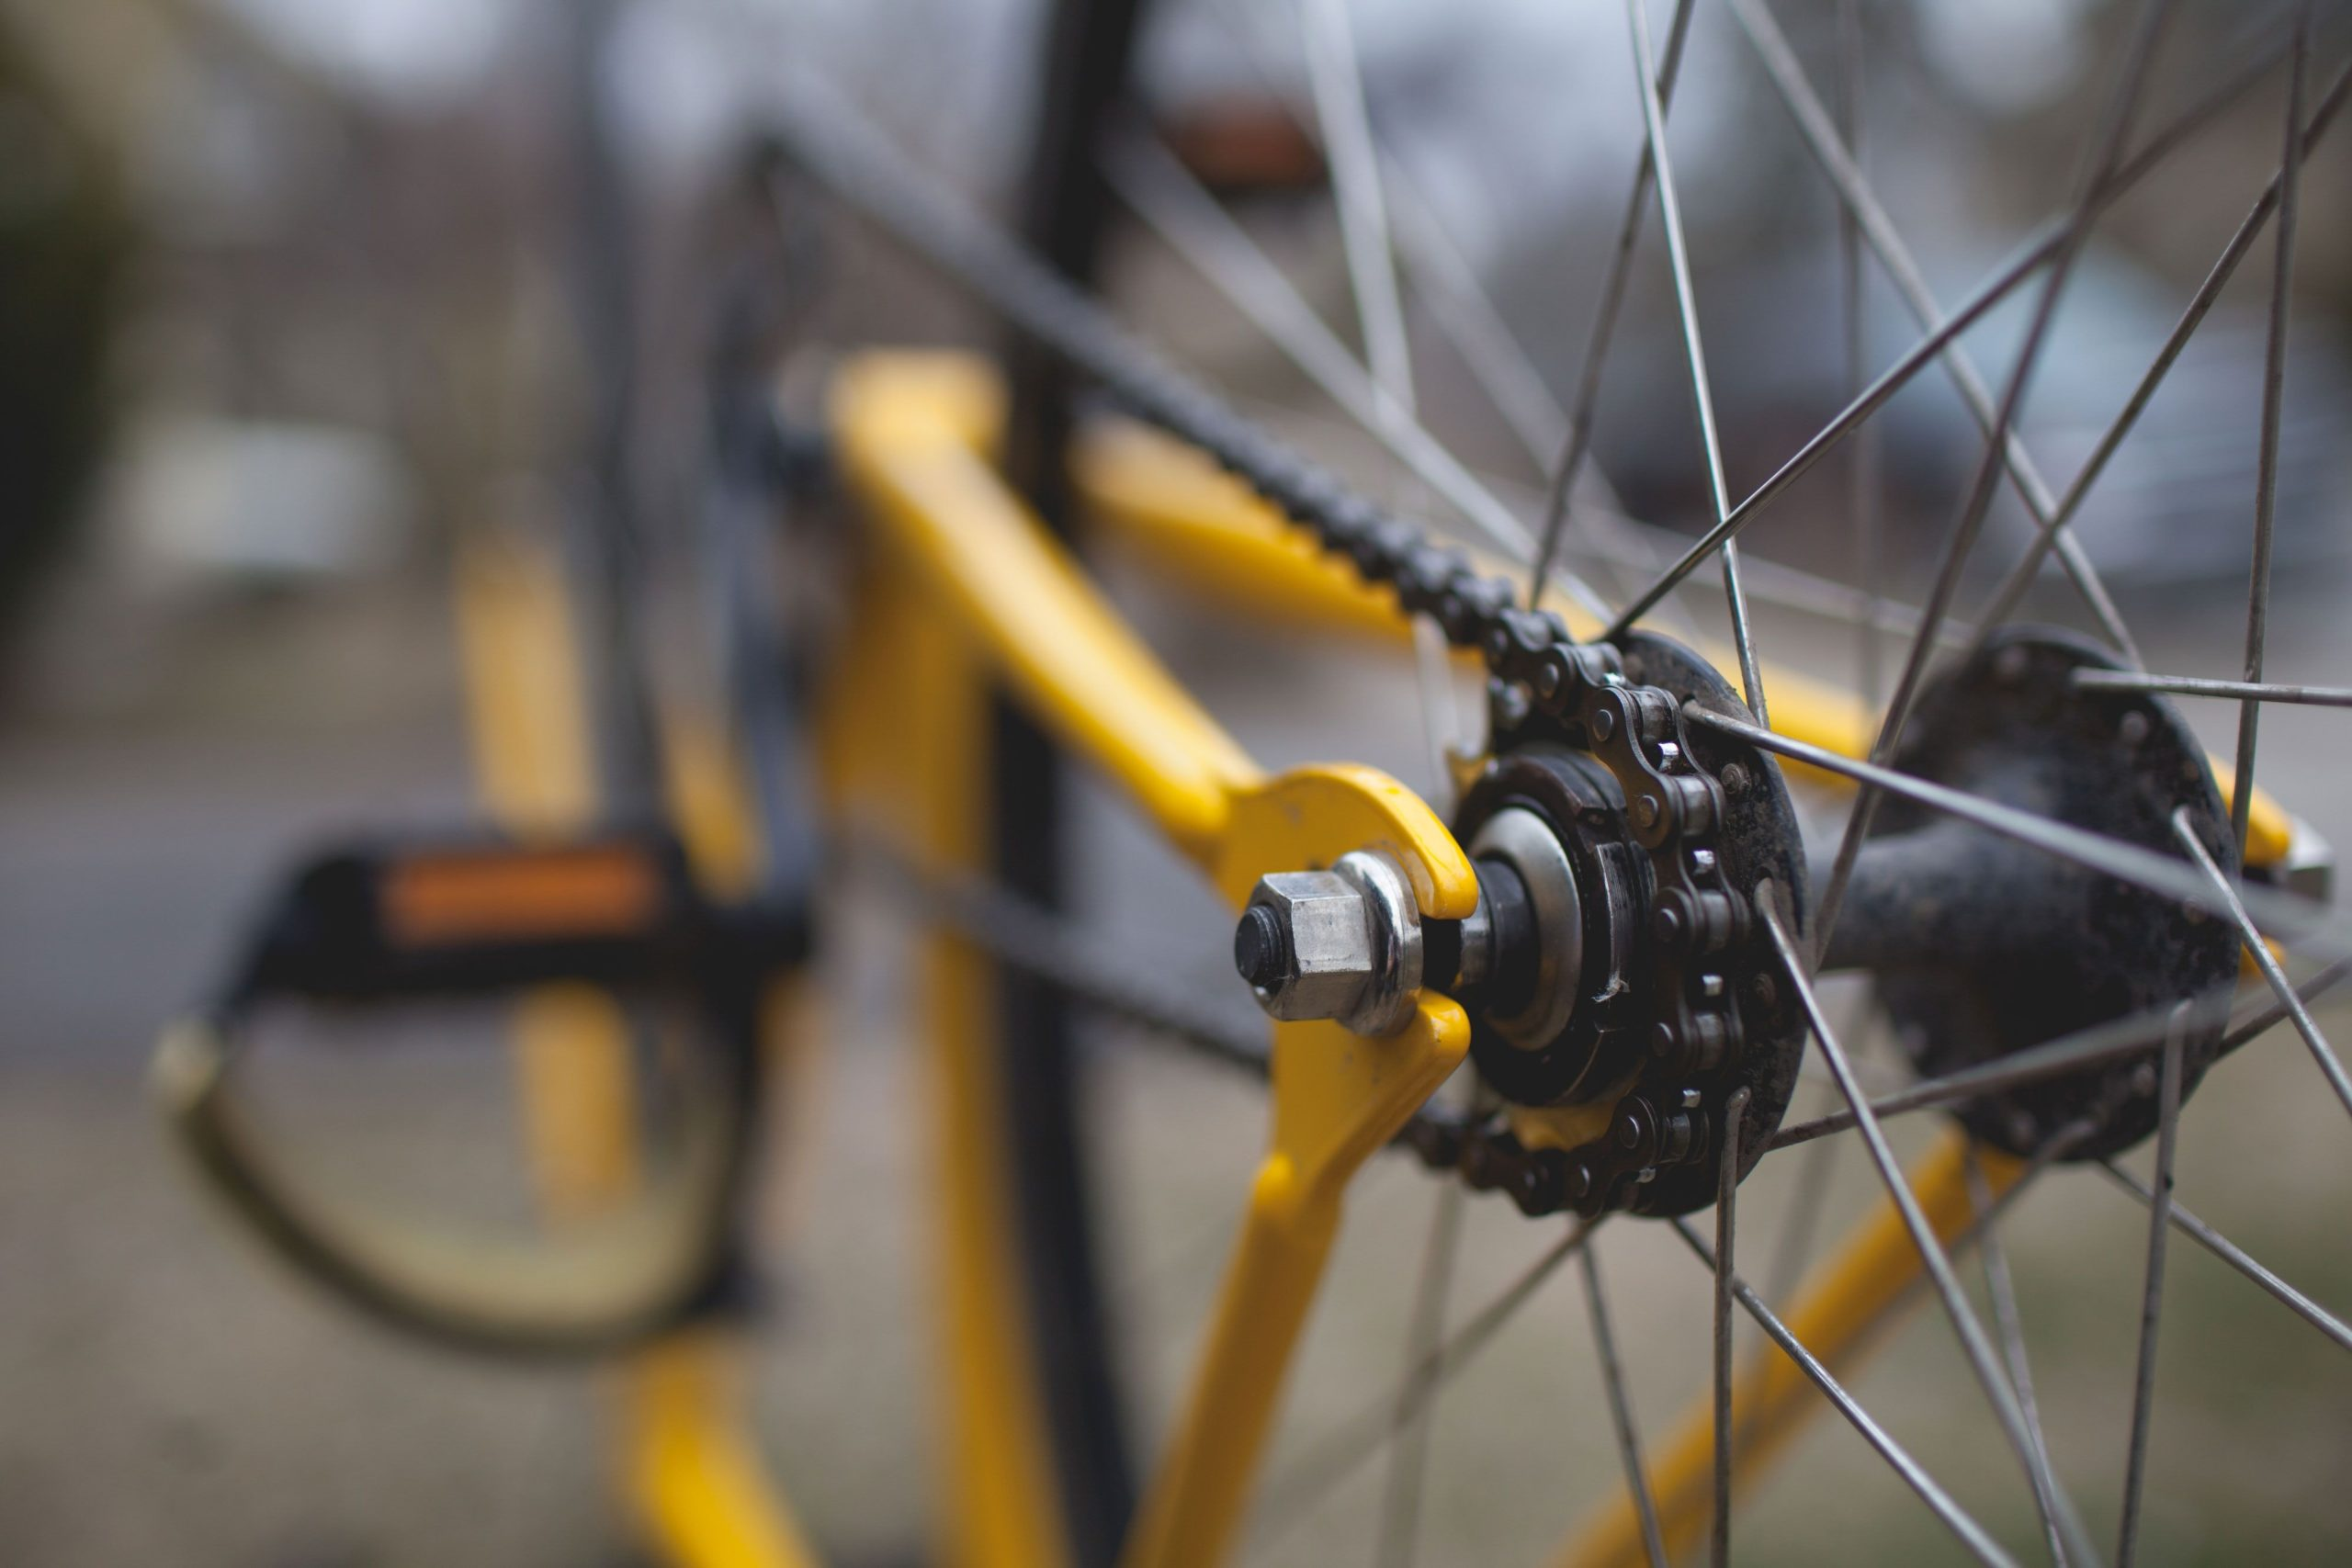 a picture of the chain in a yellow bike